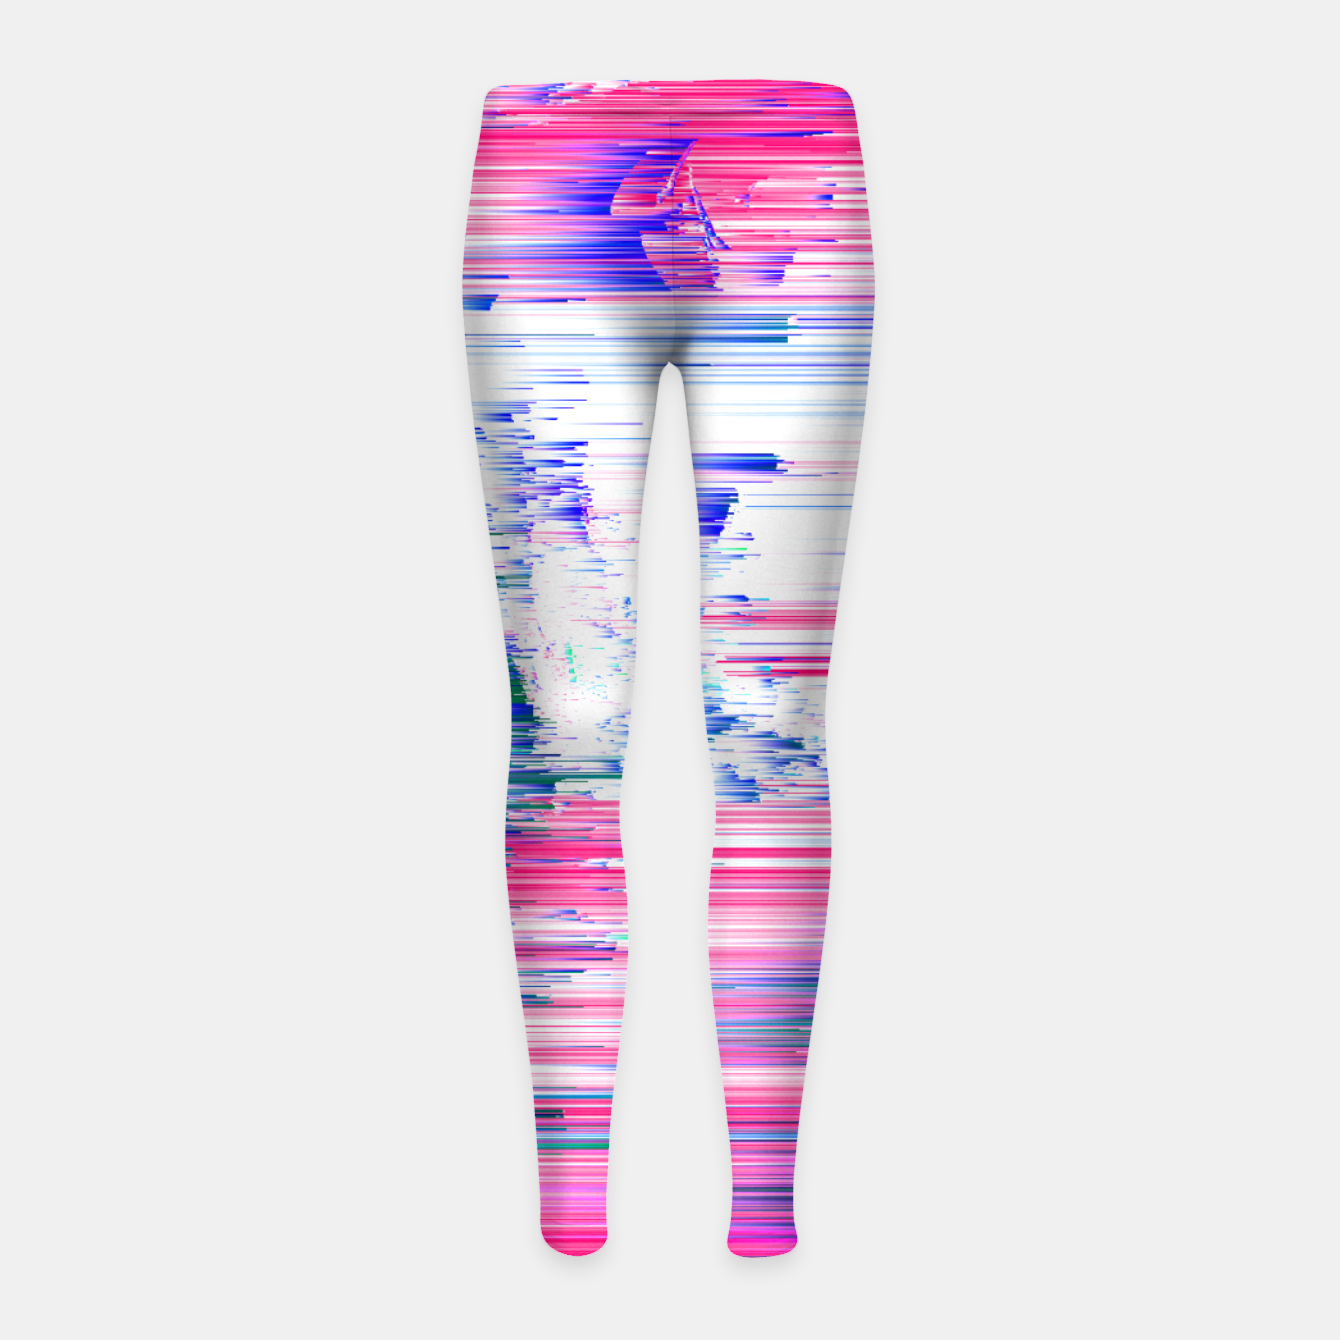 Only 90s Kids - Pastel Glitchy Abstract Pixel Art Girl\'s leggings ...